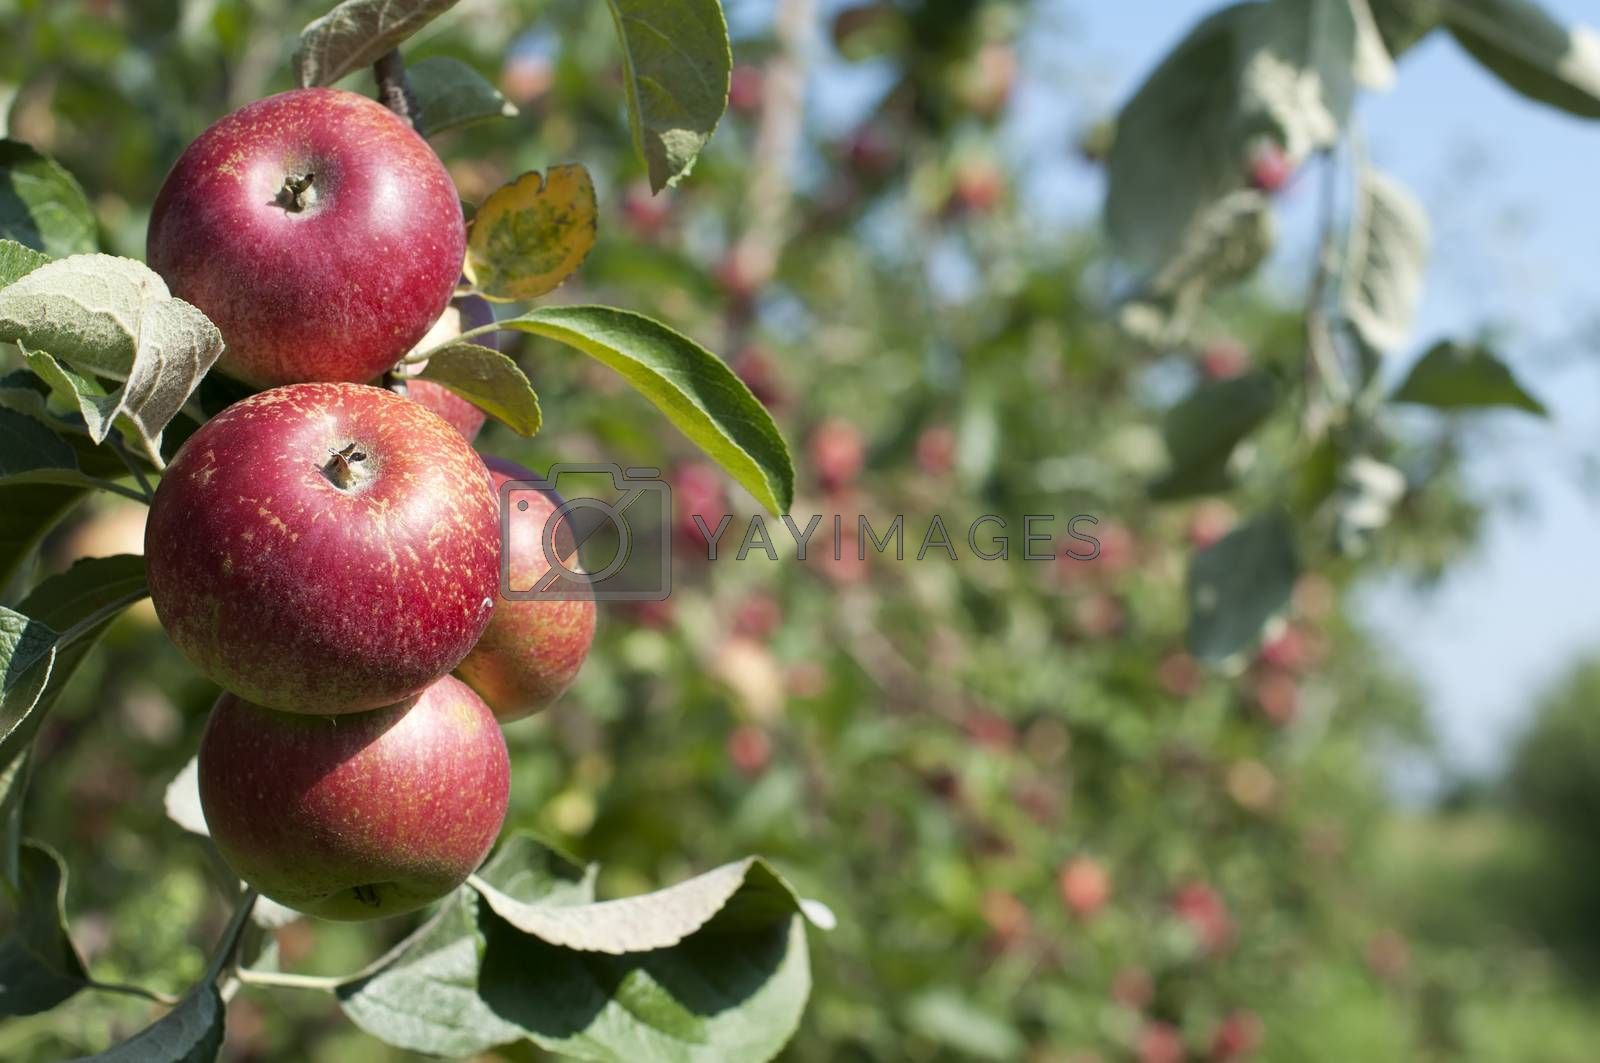 Apple tree with red apples. Blurred apples on background